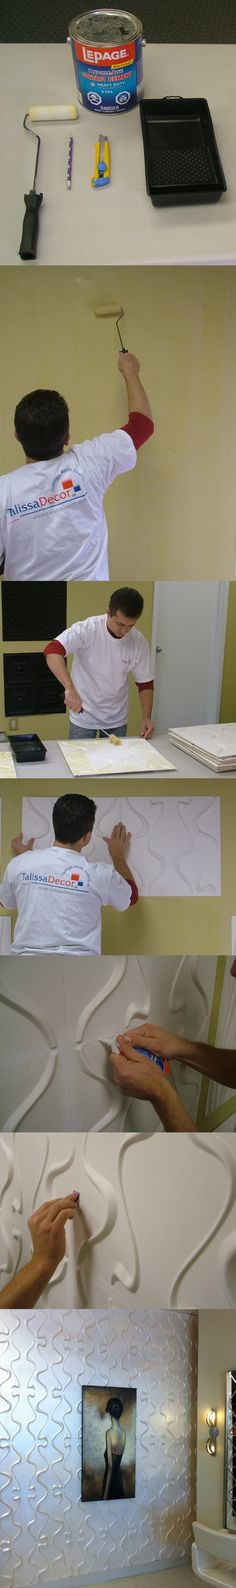 #TalissaDecor. Quick and easy DIY Project transforming a plane wall into a 3D Accent wall.  All you need is glue, roller, utility knife and of course the 3D Wall Panels of your choice.  Follow these simple steps and create the WOW effect !  Lightweight, easy to install and maintenance free, these panels can be used to decorate an entire room or to add focus by creating an accent wall.  #3Dwallpanels #3Dwalls #modernwalls #accentwalls #3Dwalltile #wavywall #wavypanels #walldecor #3Dwalldecor